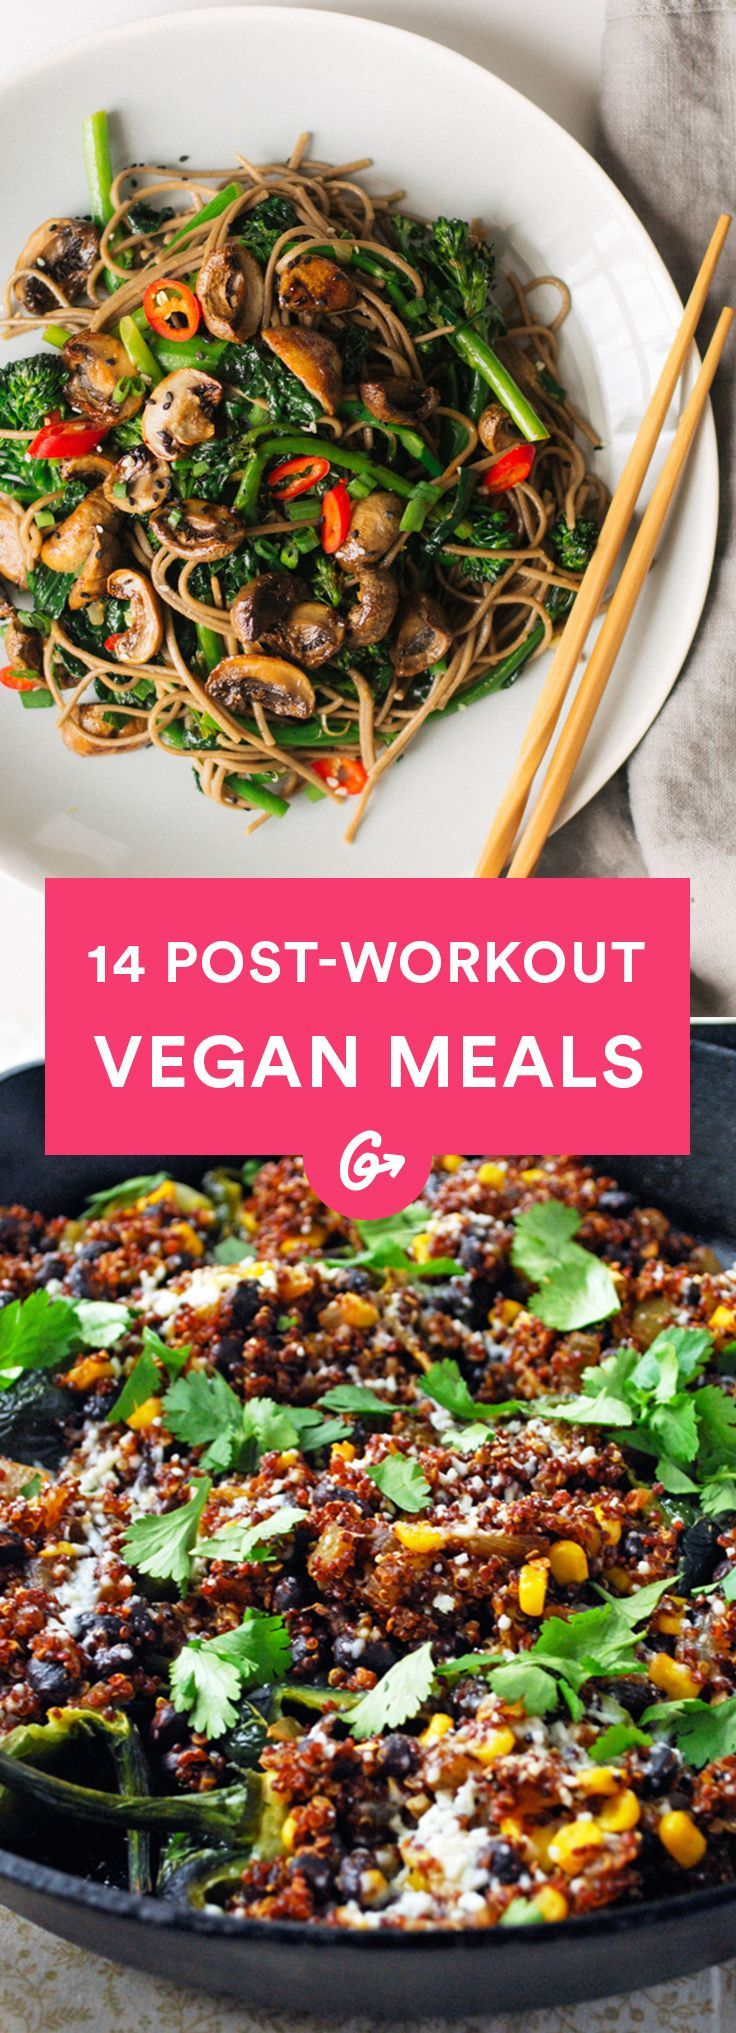 The verdict is in: Muscles dont need meat. #vegan #postworkout #recipes http://greatist.com/eat/vegan-post-workout-meals